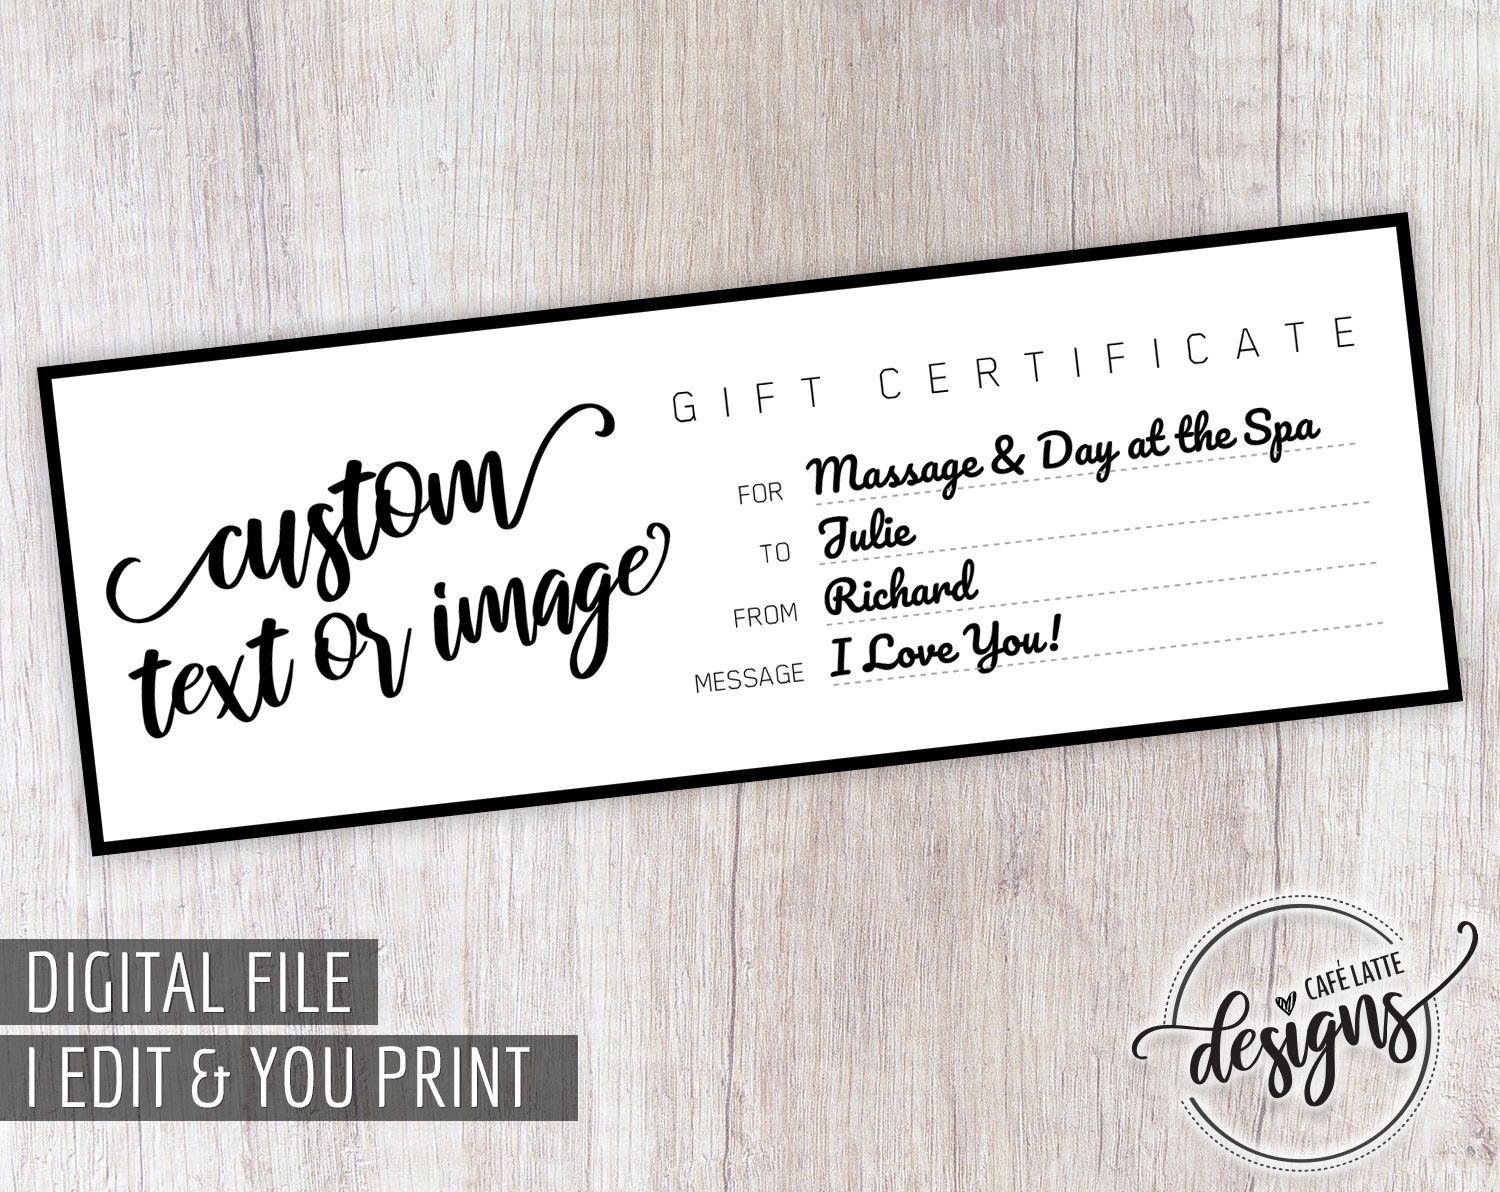 Custom Gift Certificate Birthday Printable Gift Certificate Personalized Kids Gift Coupon Wedding Anniversary Gift Idea Last Minute Gift Personalized Gifts For Kids Printable Gift Certificate Printable Gift